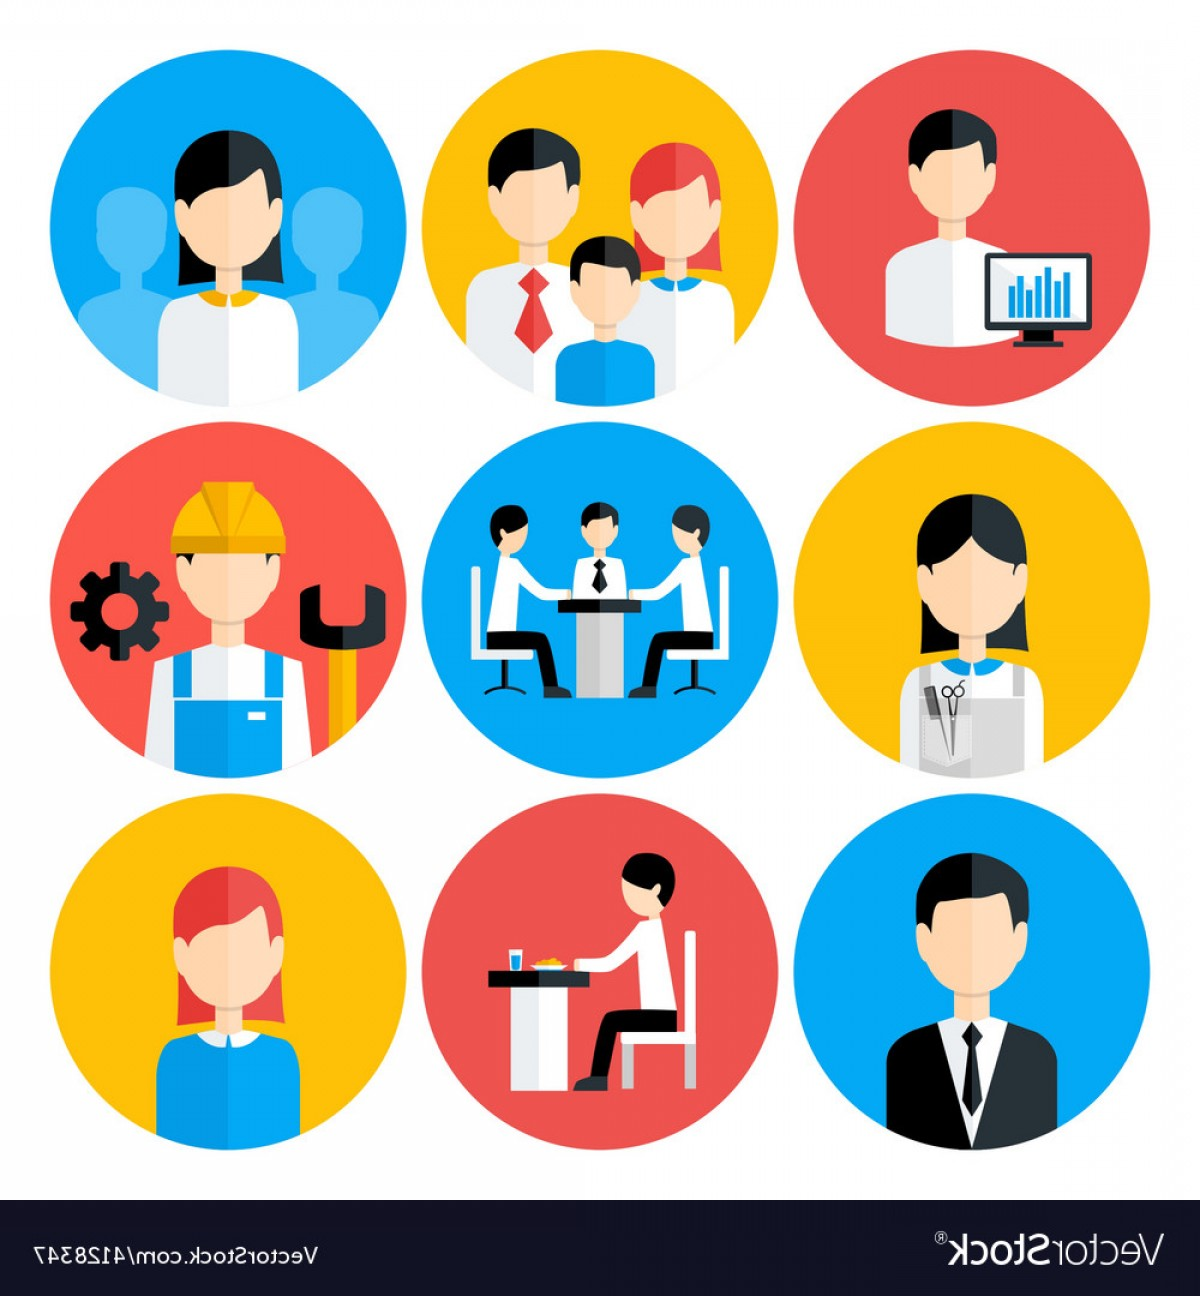 Free Vector Business People Icon: Flat Stylized Business People Icons Set Vector